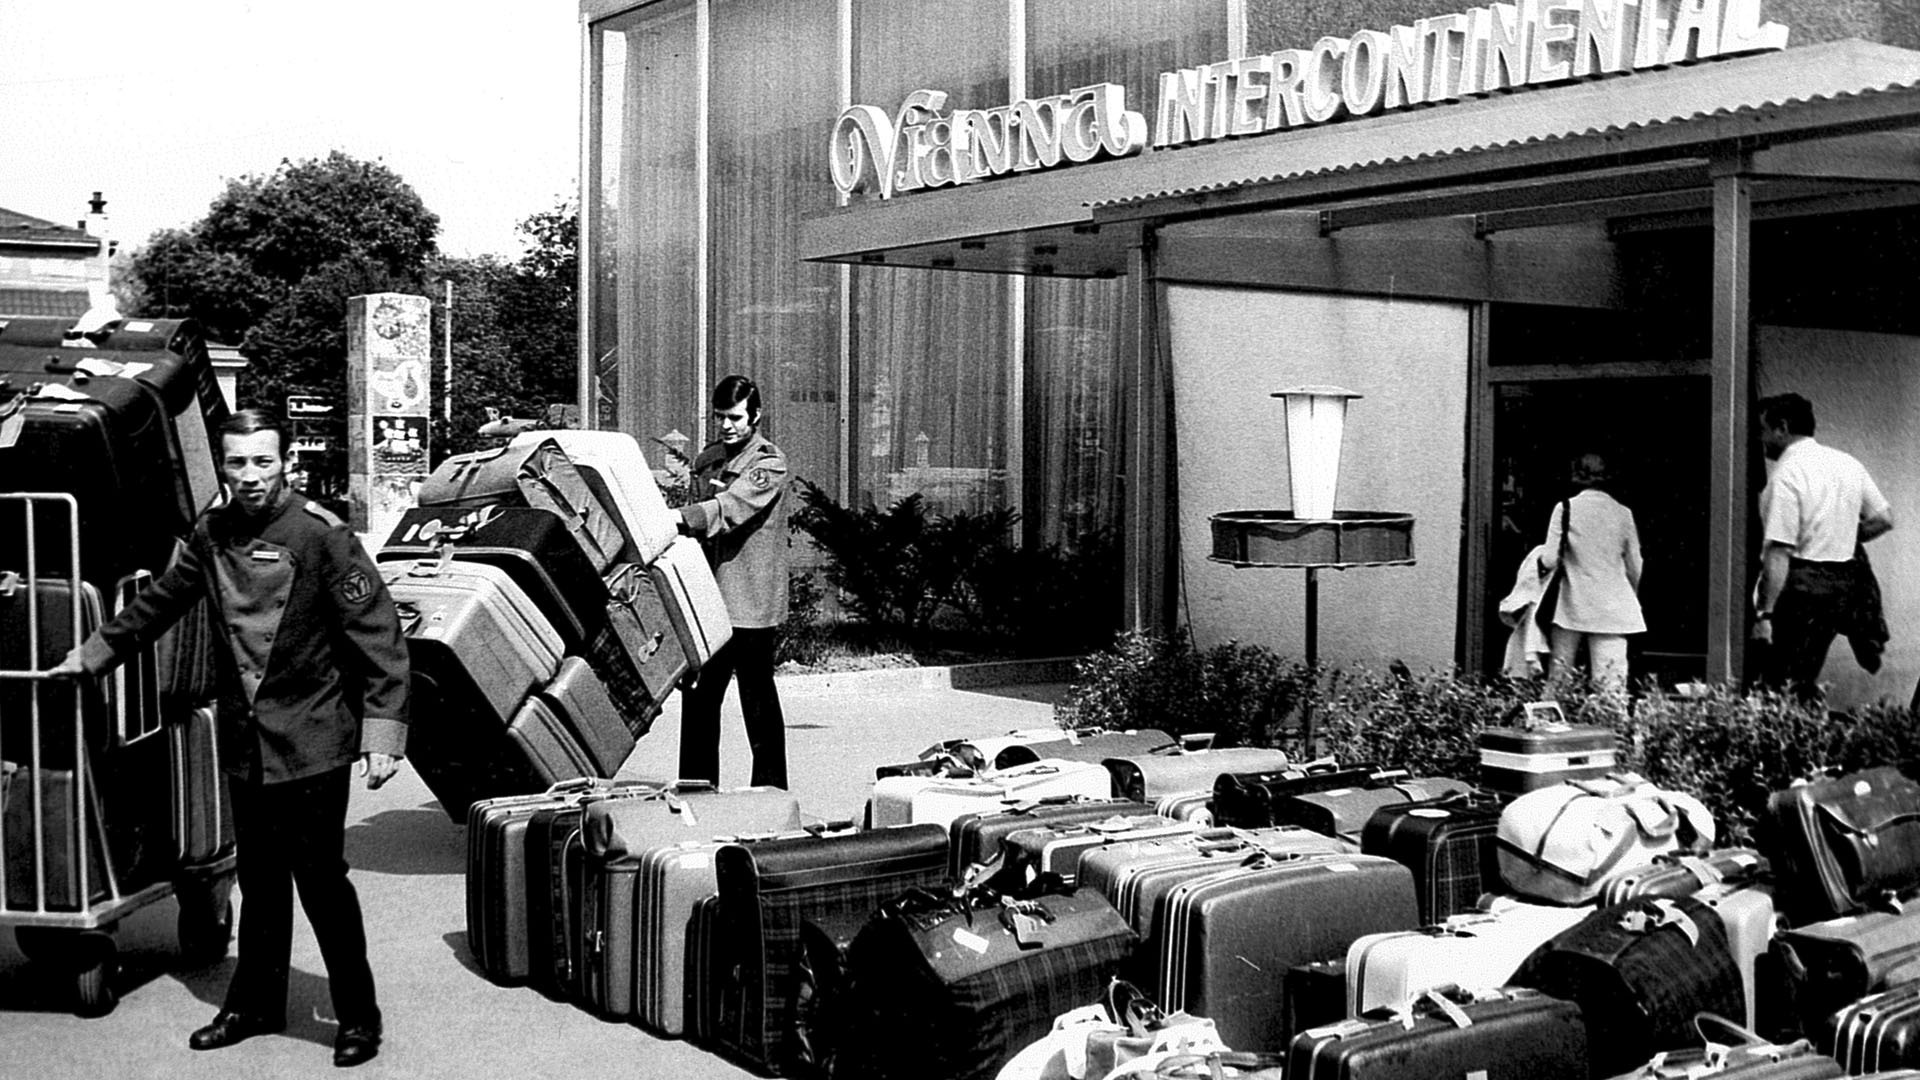 Entrance-with-luggage_s